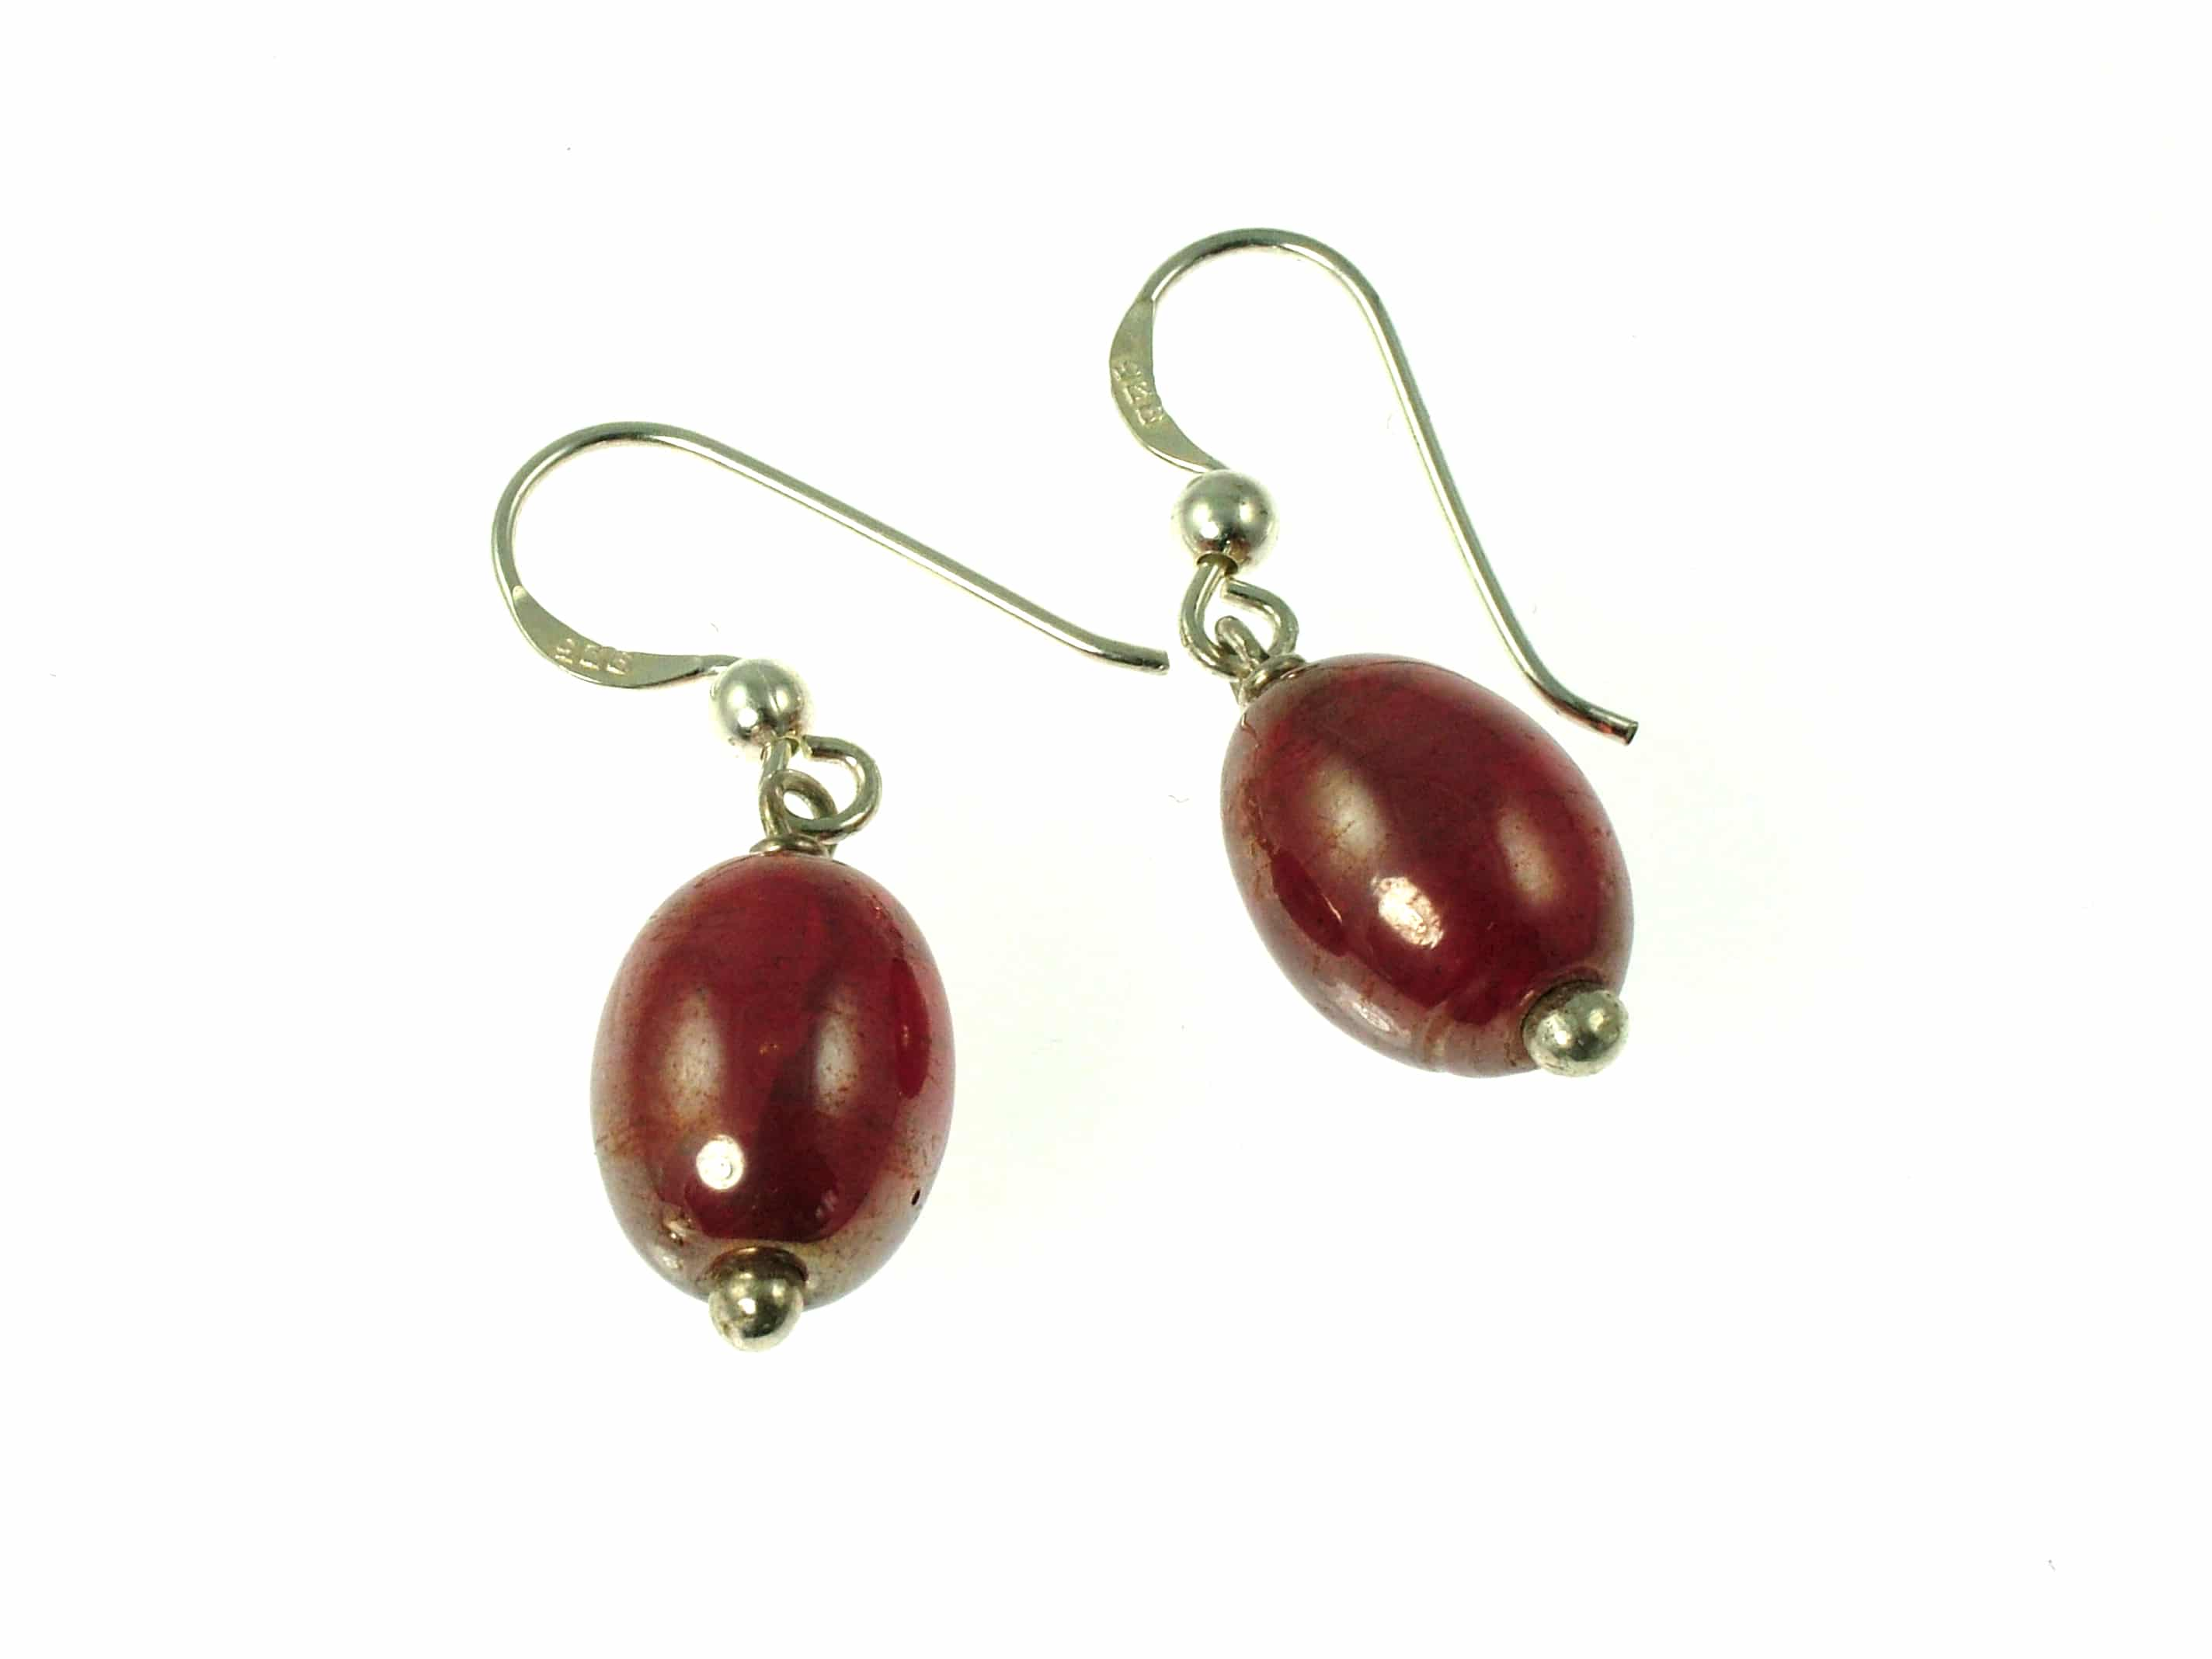 Missy K - Maltese Mdina Glass Drop Earrings